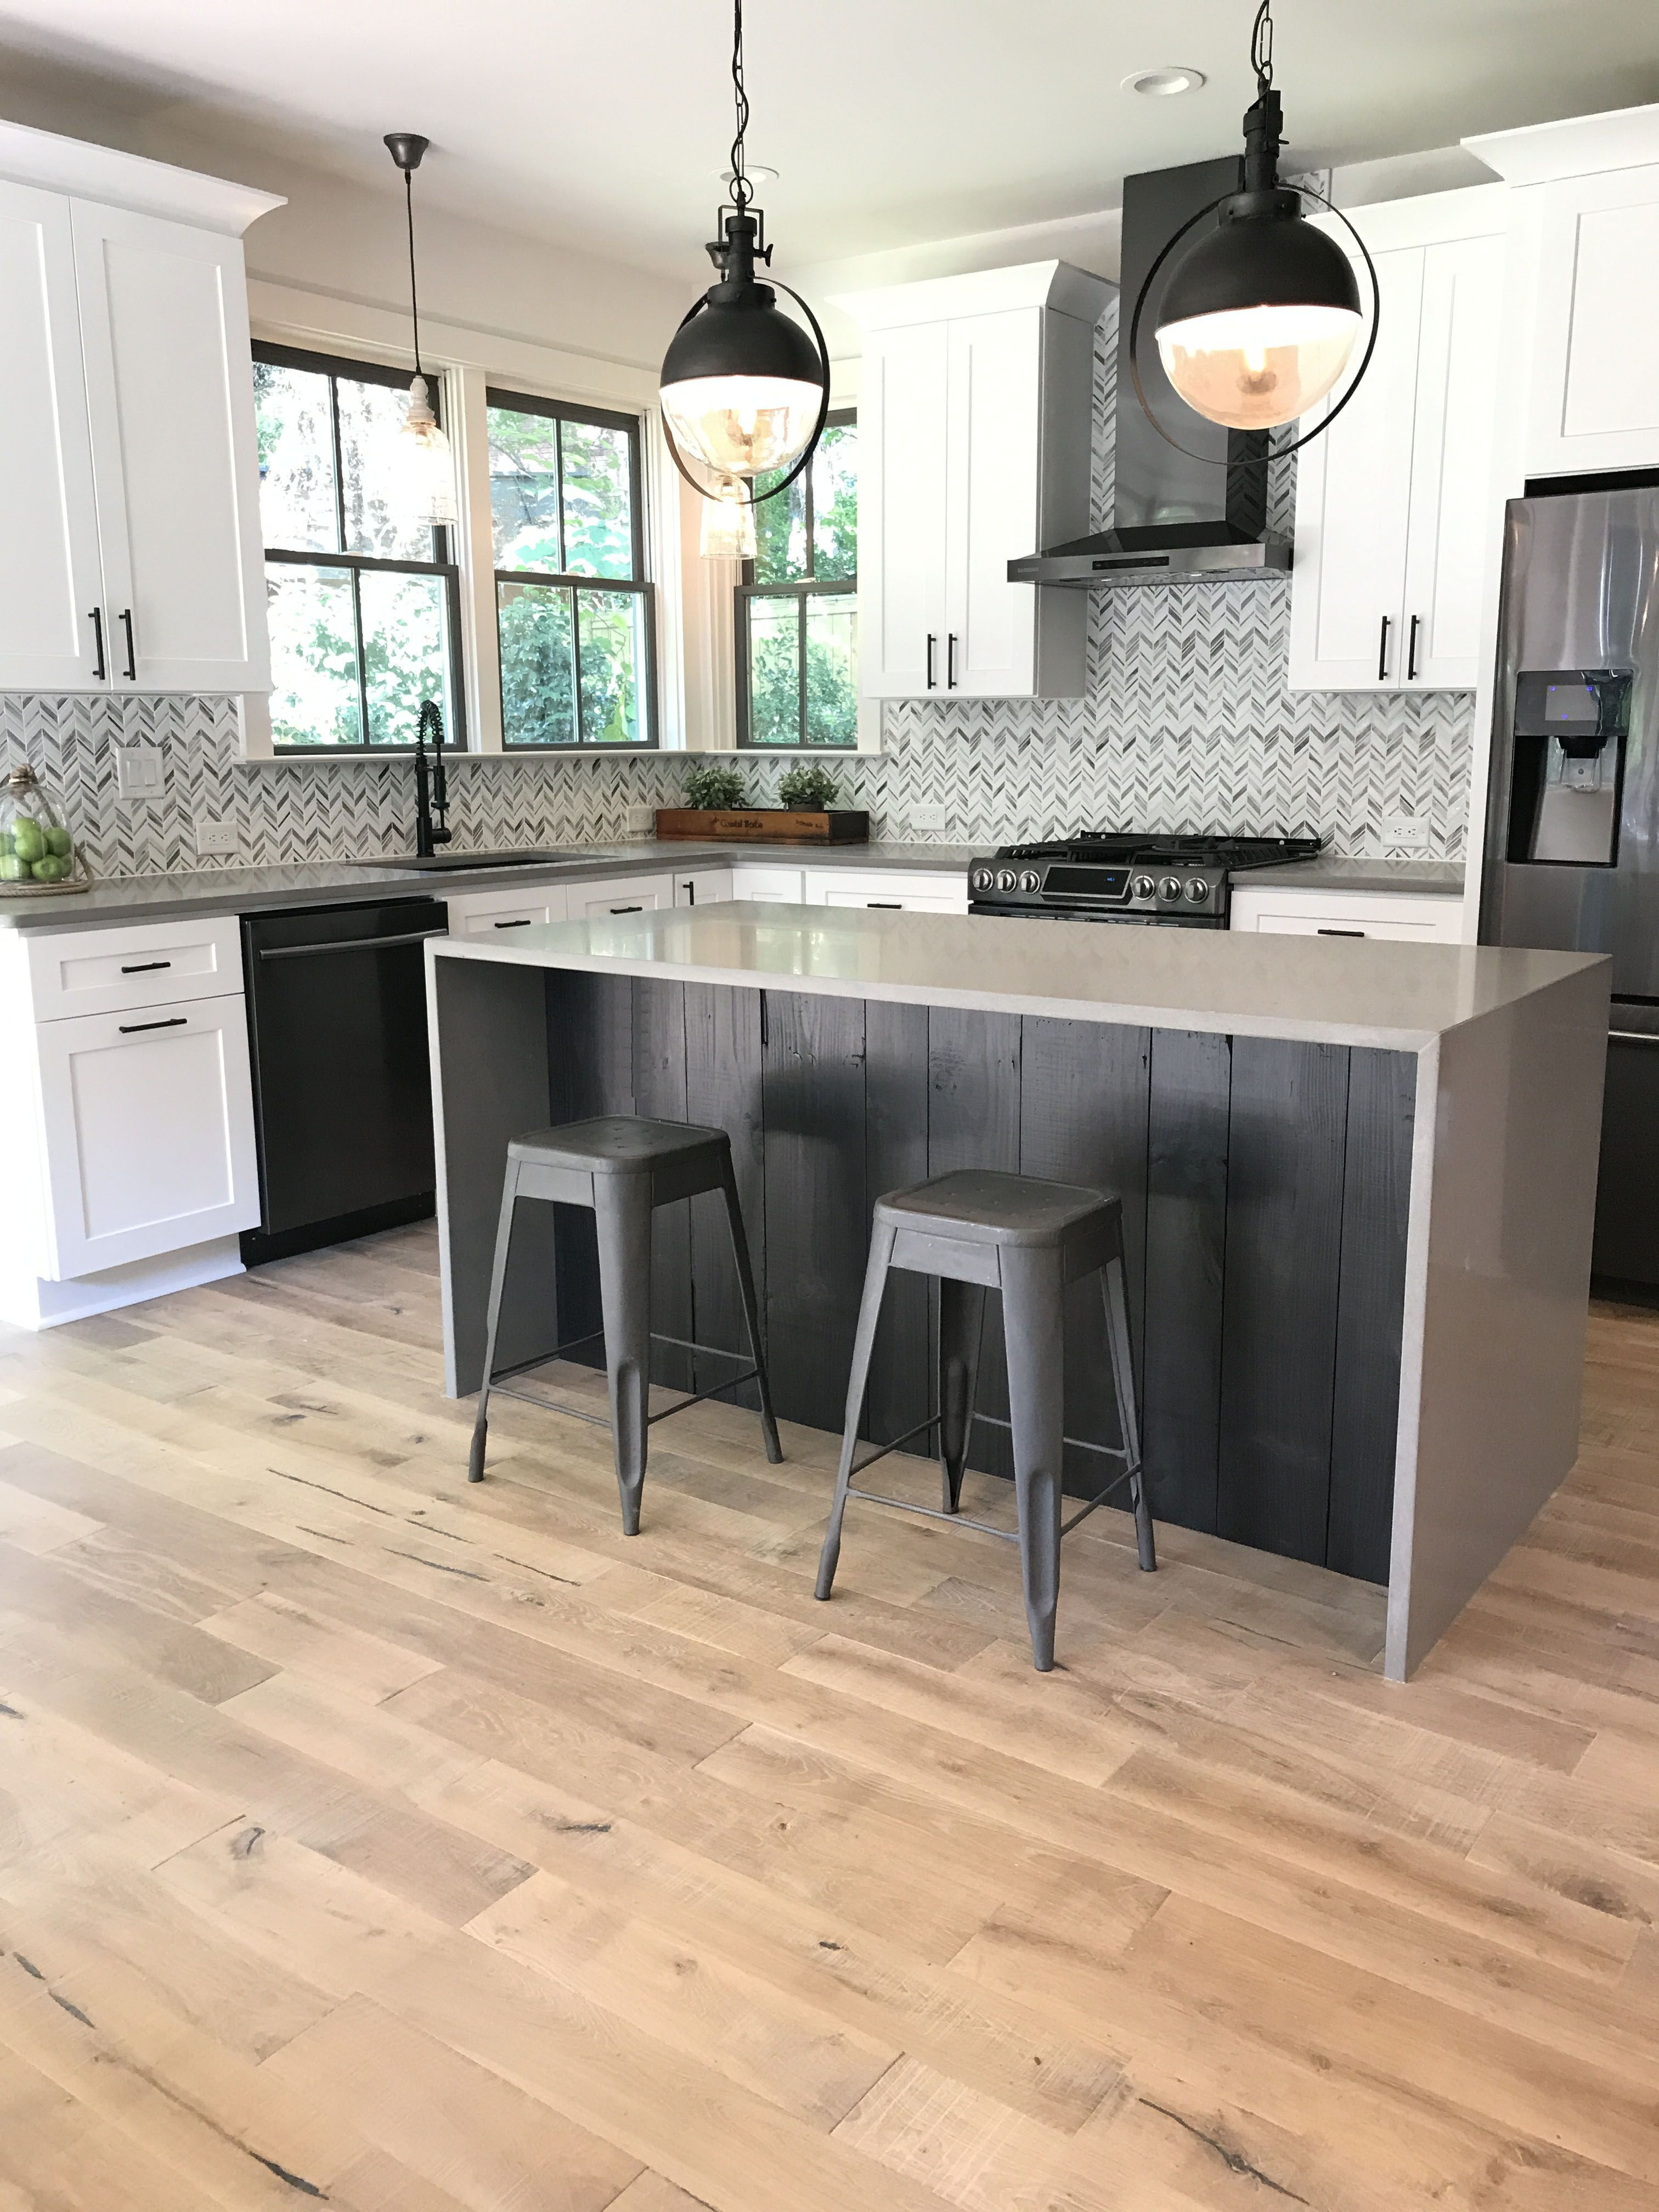 hardwood floor options of gorgeous wood floors in kitchen pros and cons on kitchen hardwood intended for gorgeous wood floors in kitchen pros and cons on kitchen hardwood floors unique remodel home storehouse planks drum